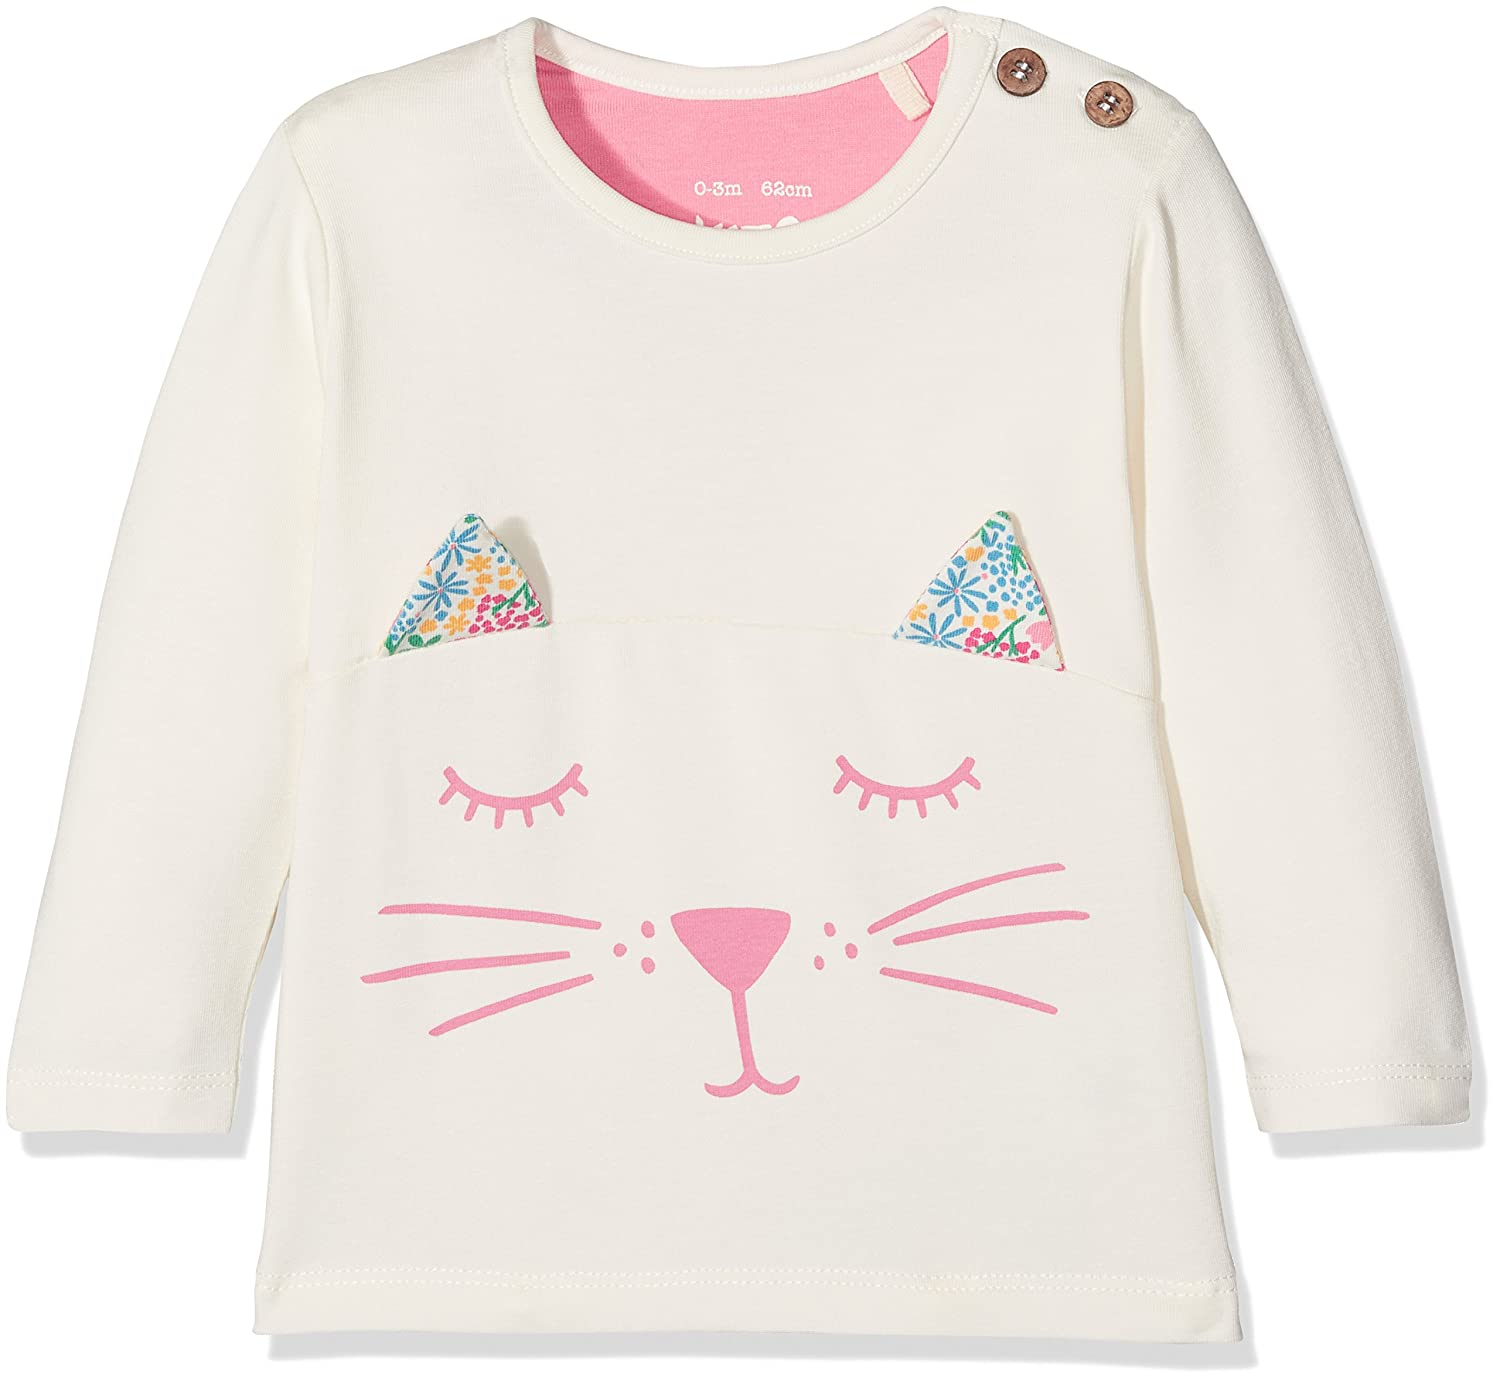 Kite Baby Girls' Kitten Ears Longsleeve T-Shirt BG515